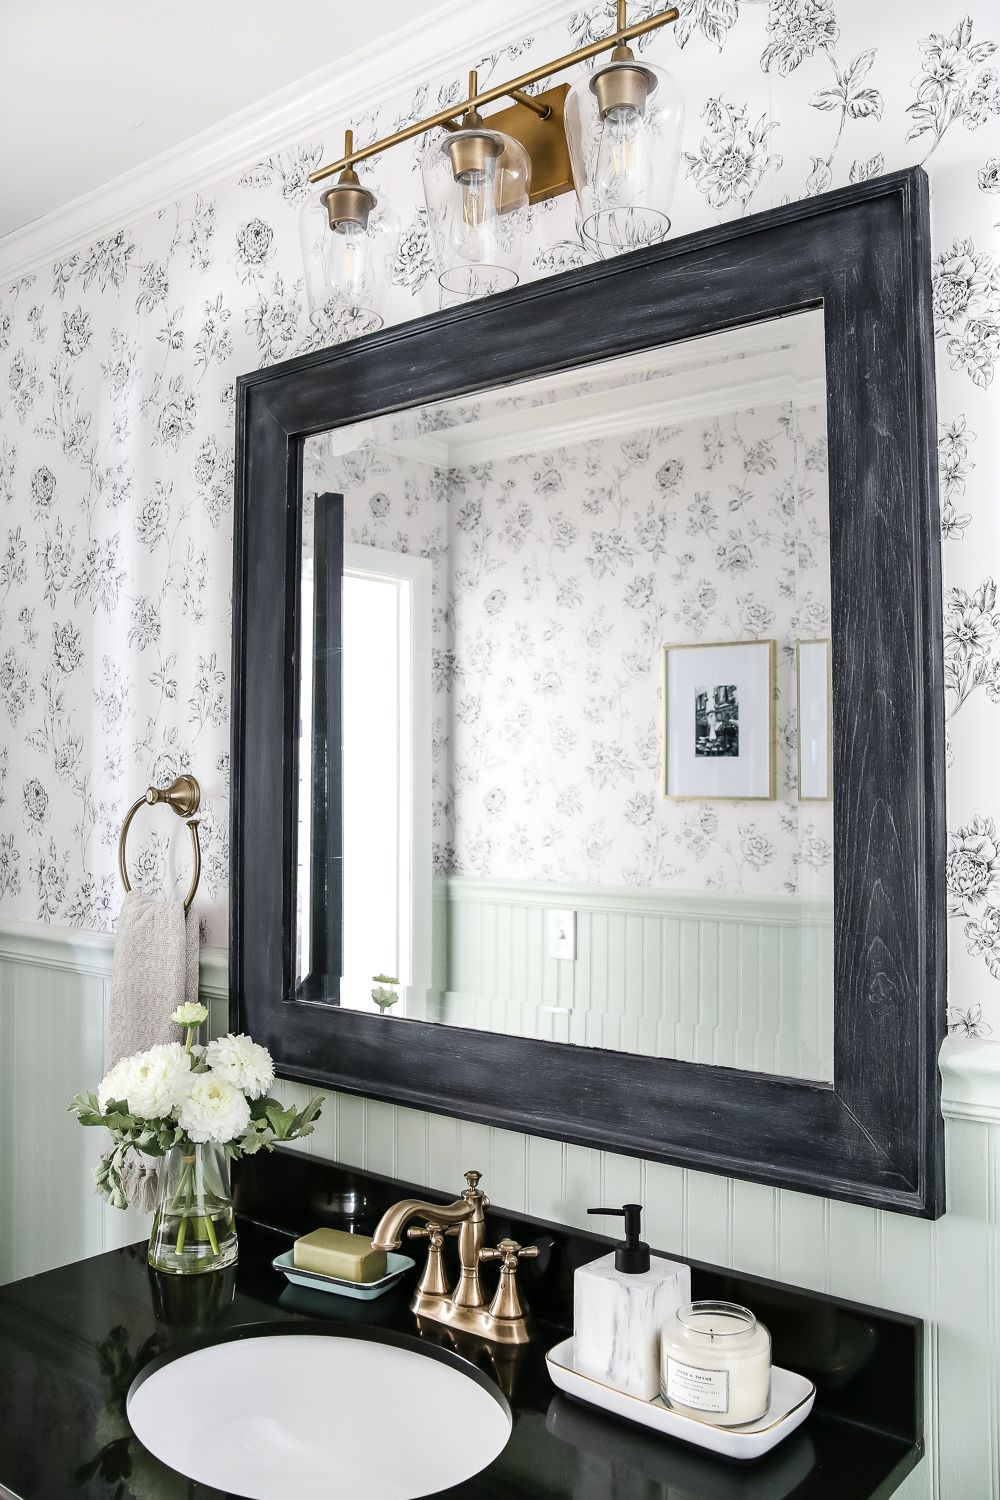 Dry brushed black mirror makeover ideas for the house pinterest